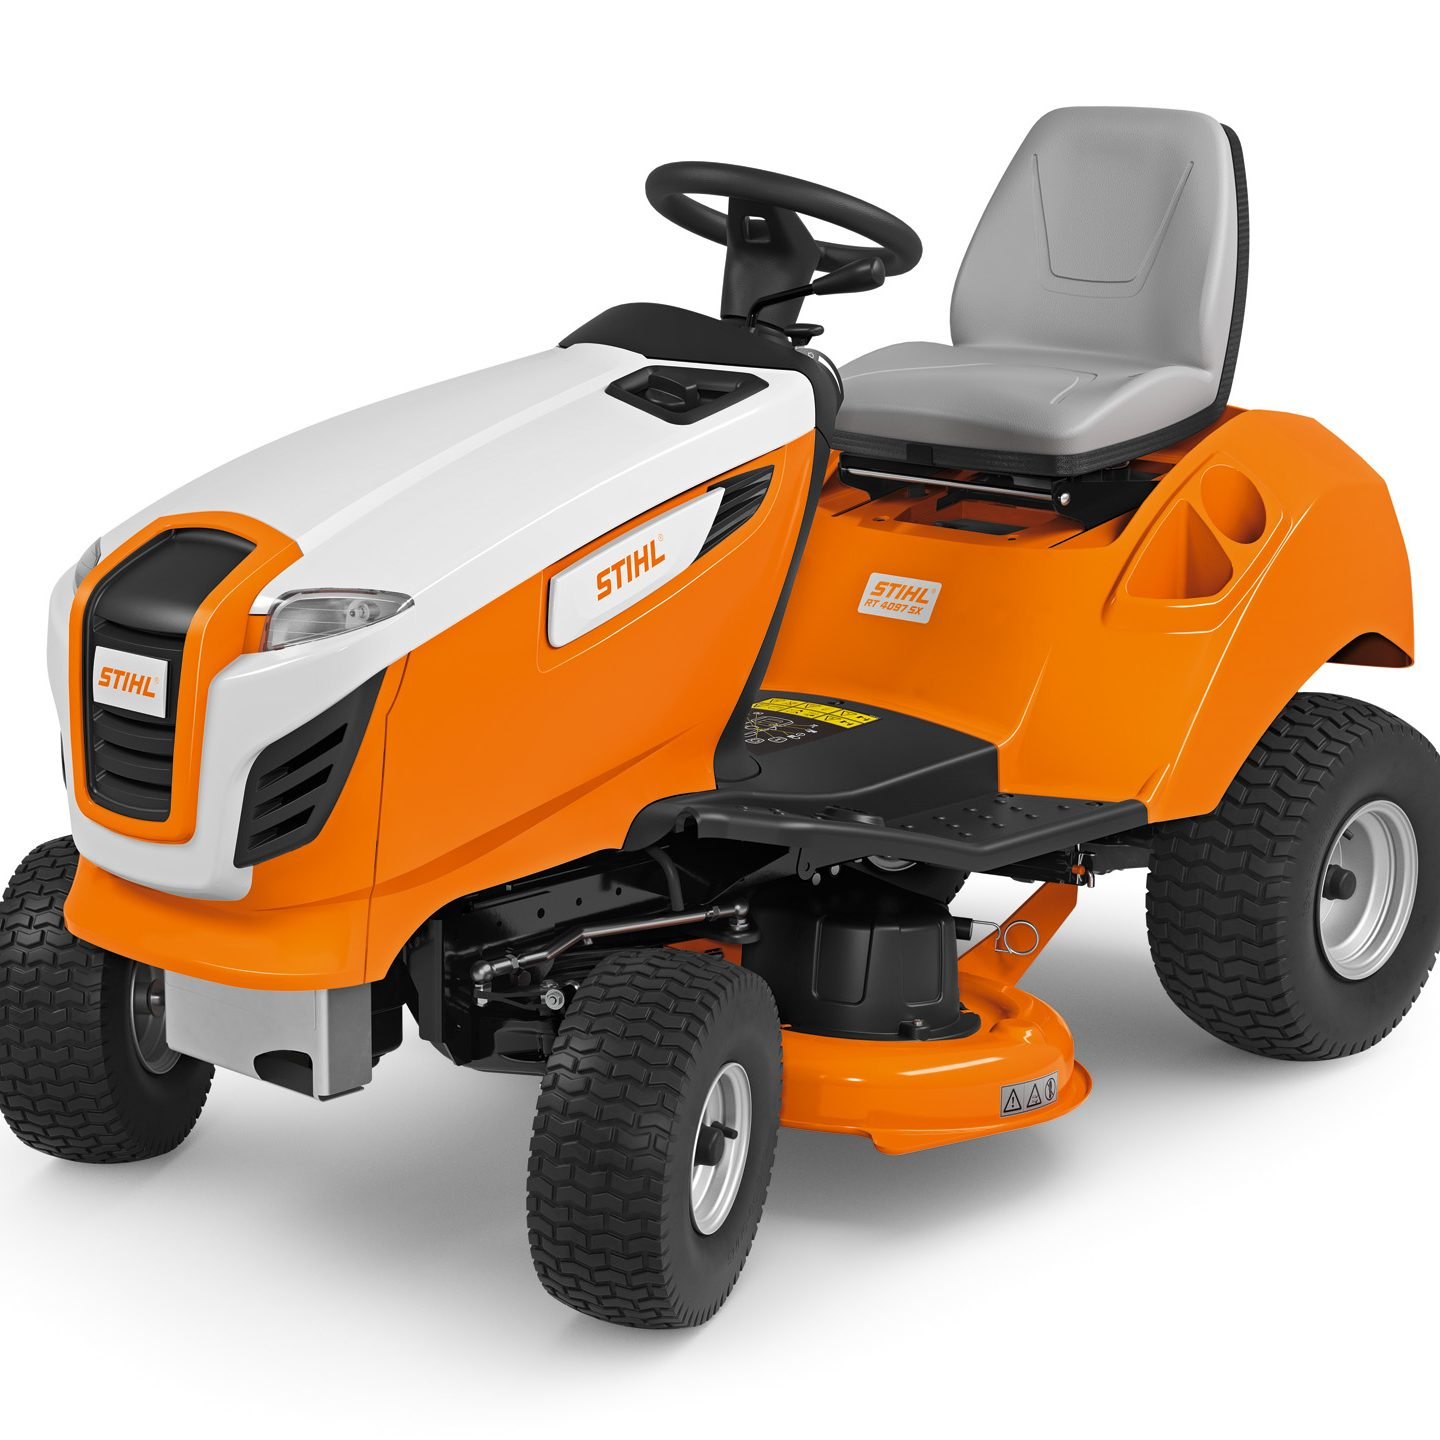 RT 4097 SX - COMPACT SIDE DISCHARGE LAWN TRACTOR